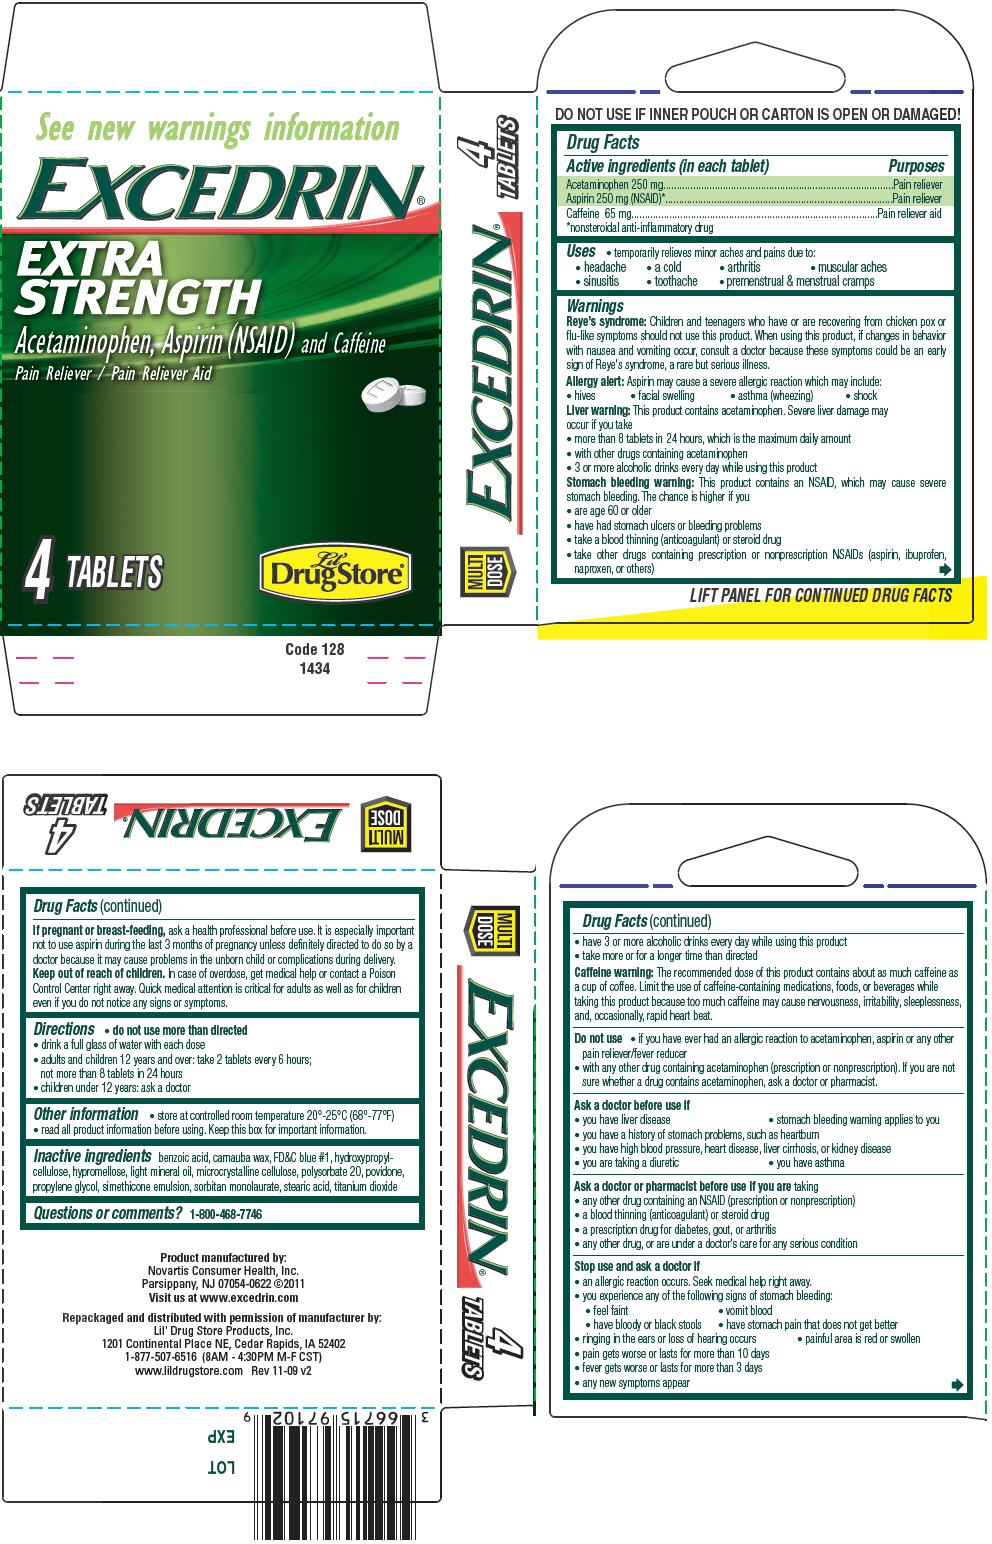 Extra Strength Ginkgo 120 Mg: Excedrin Extra Strength (tablet) Lil' Drug Store Products